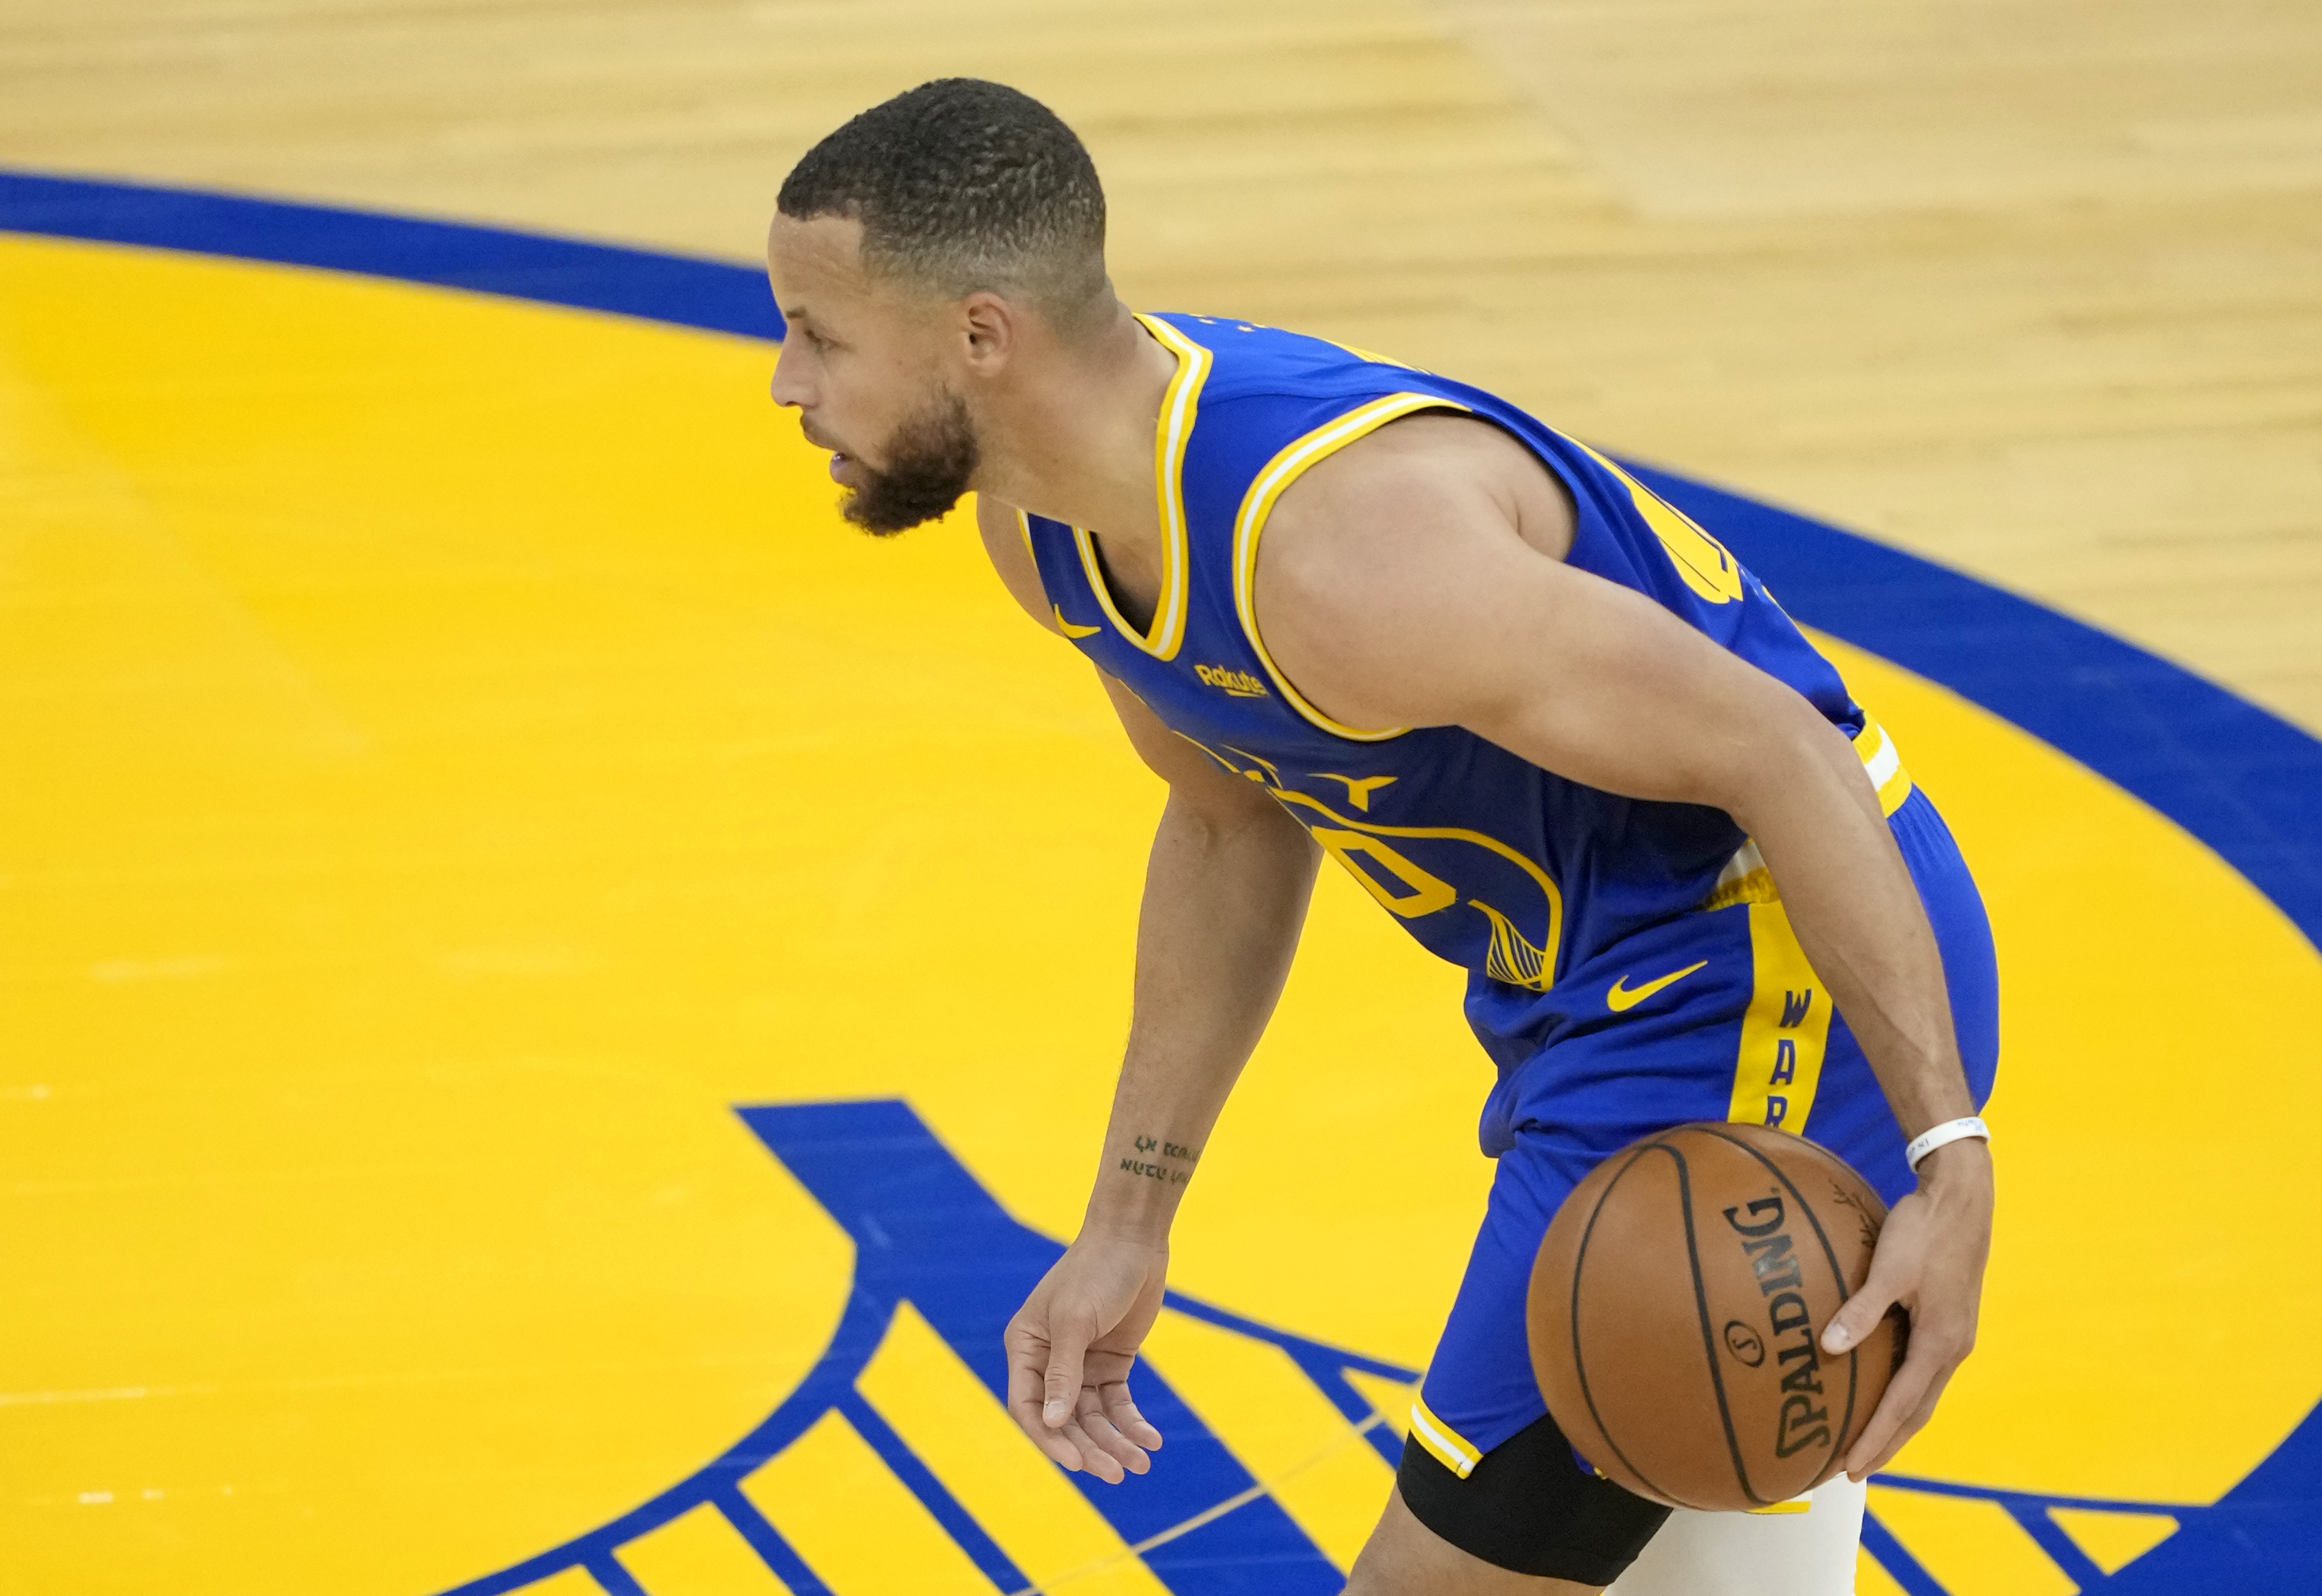 Stephen Curry of the Golden State Warriors dribbles the ball against the Dallas Mavericks during the first half of an NBA basketball game at Chase Center on April 27, 2021 in San Francisco, California.